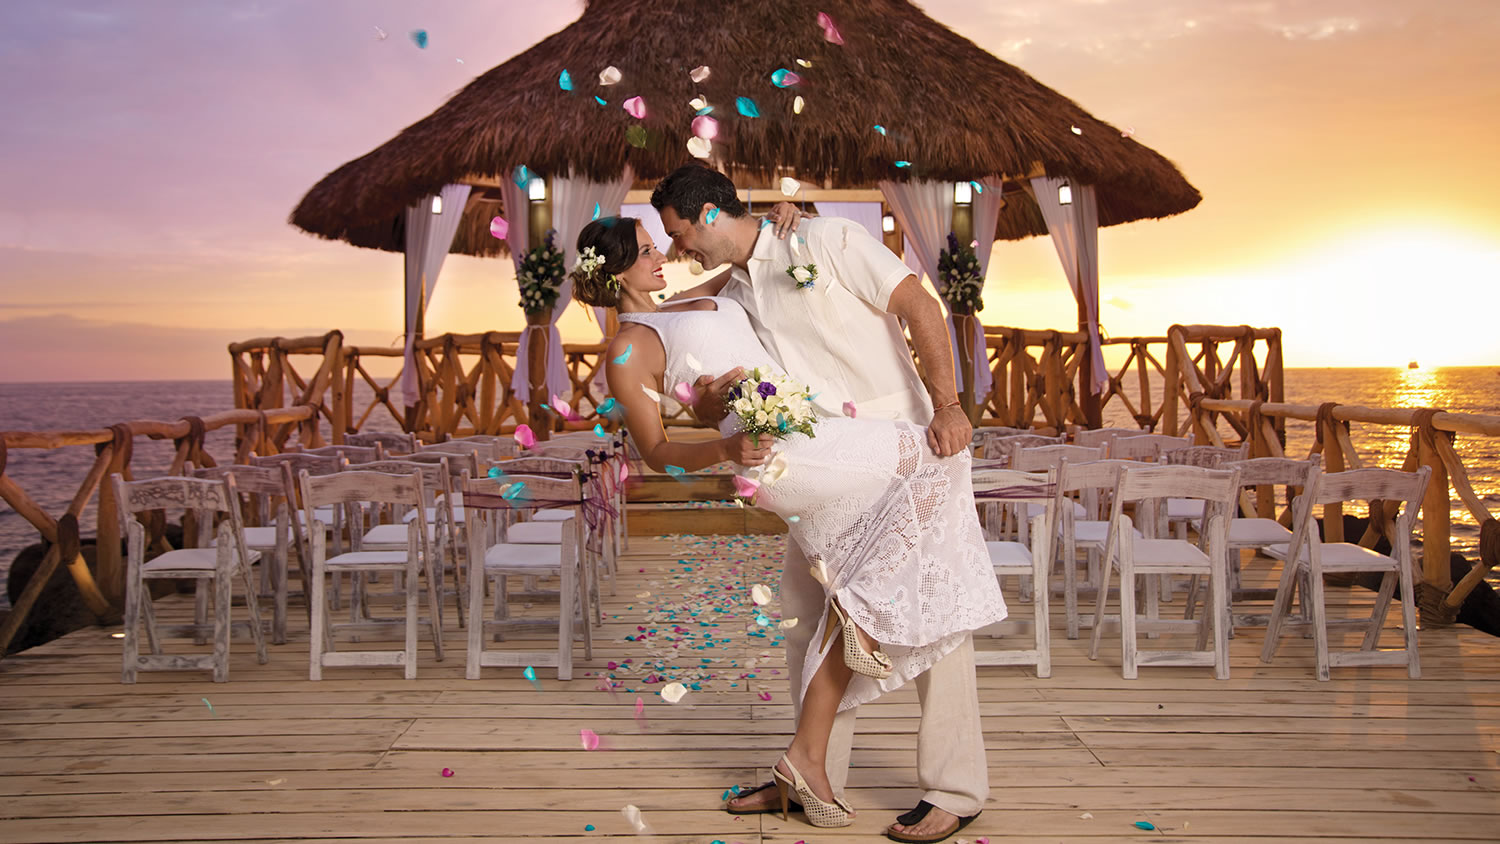 ideas de decoración de salones para bodas en la playa